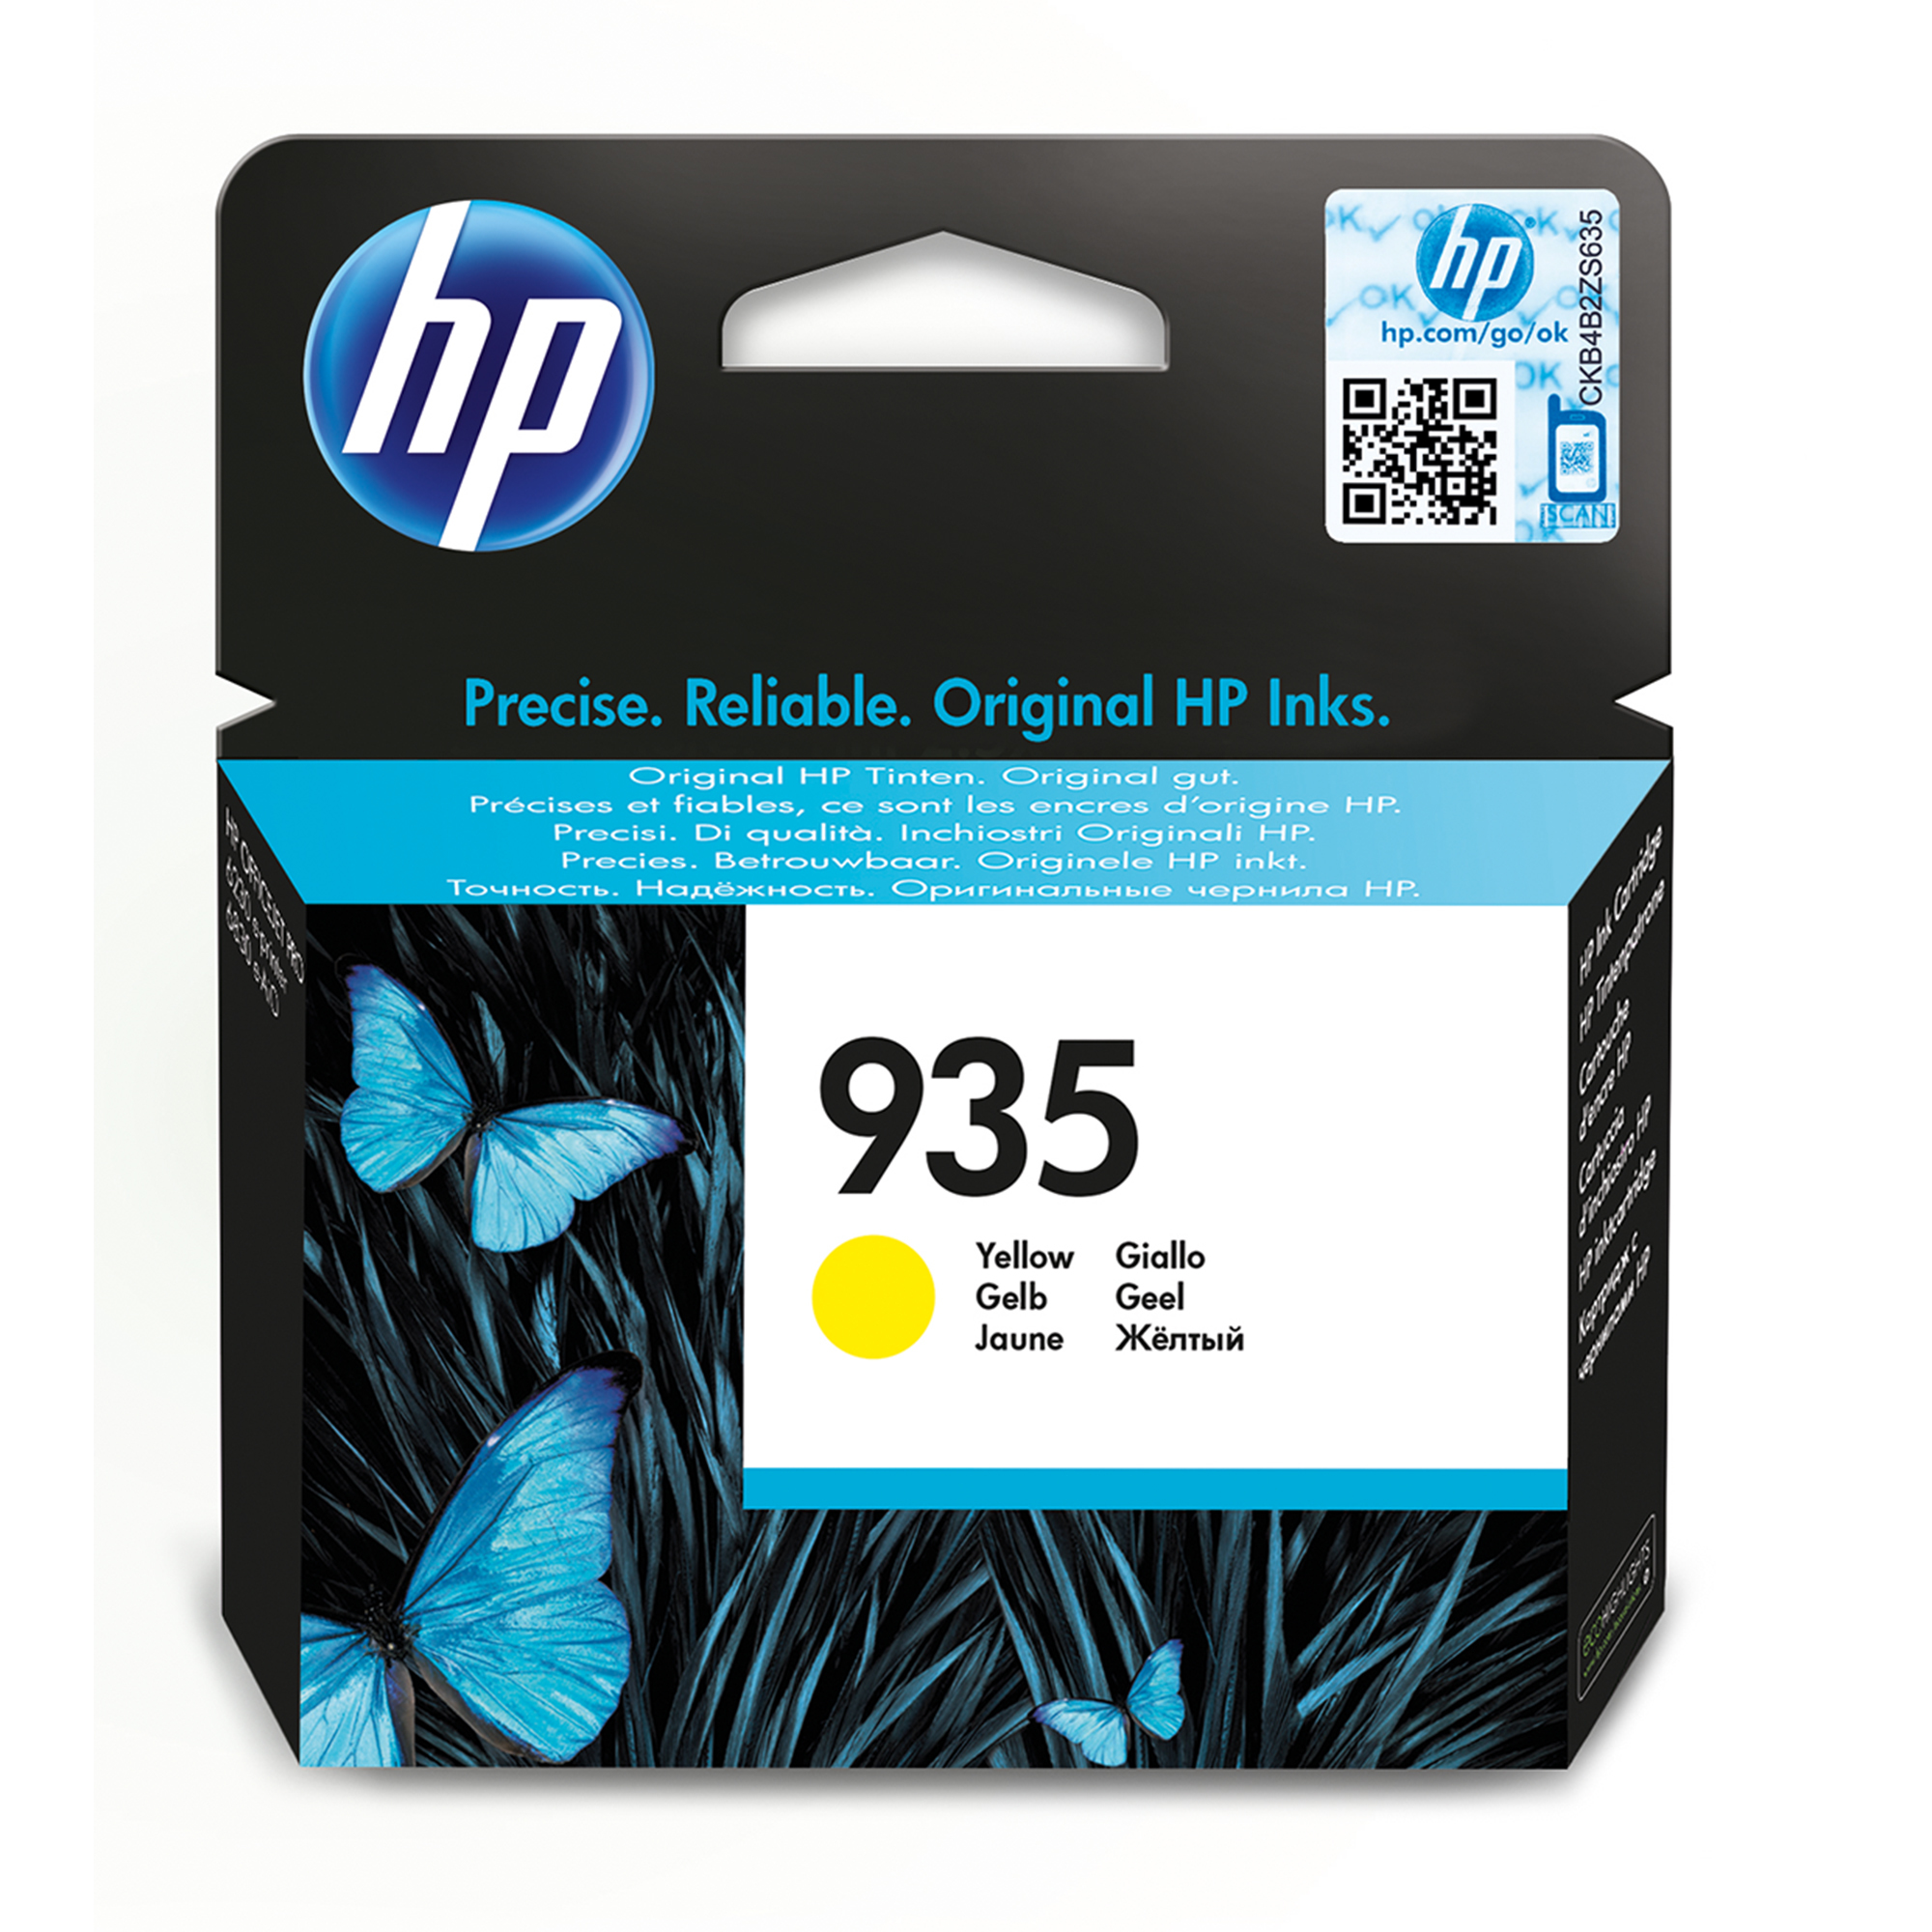 Hp - Inkjet Supply Mvs (1n)      Ink Cartridge No 935 Yellow         De/fr/nl/be/uk/se/it                C2p22ae#bgx